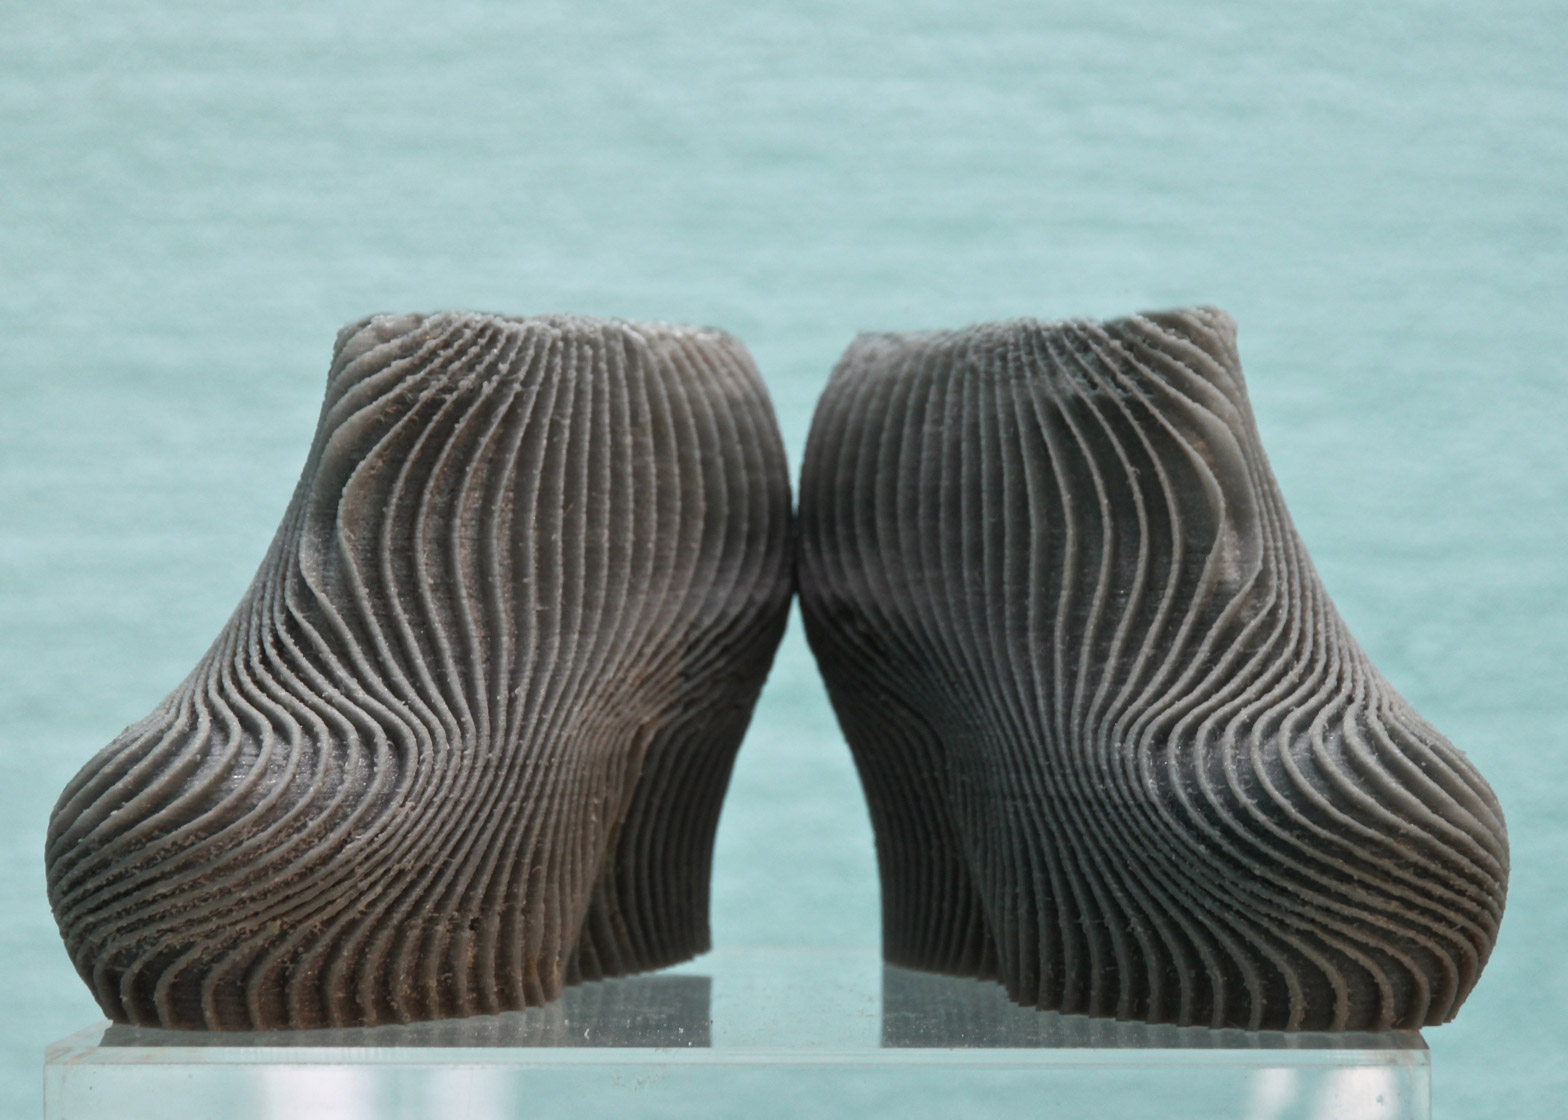 3D printed shoes by Troy Nachtigall